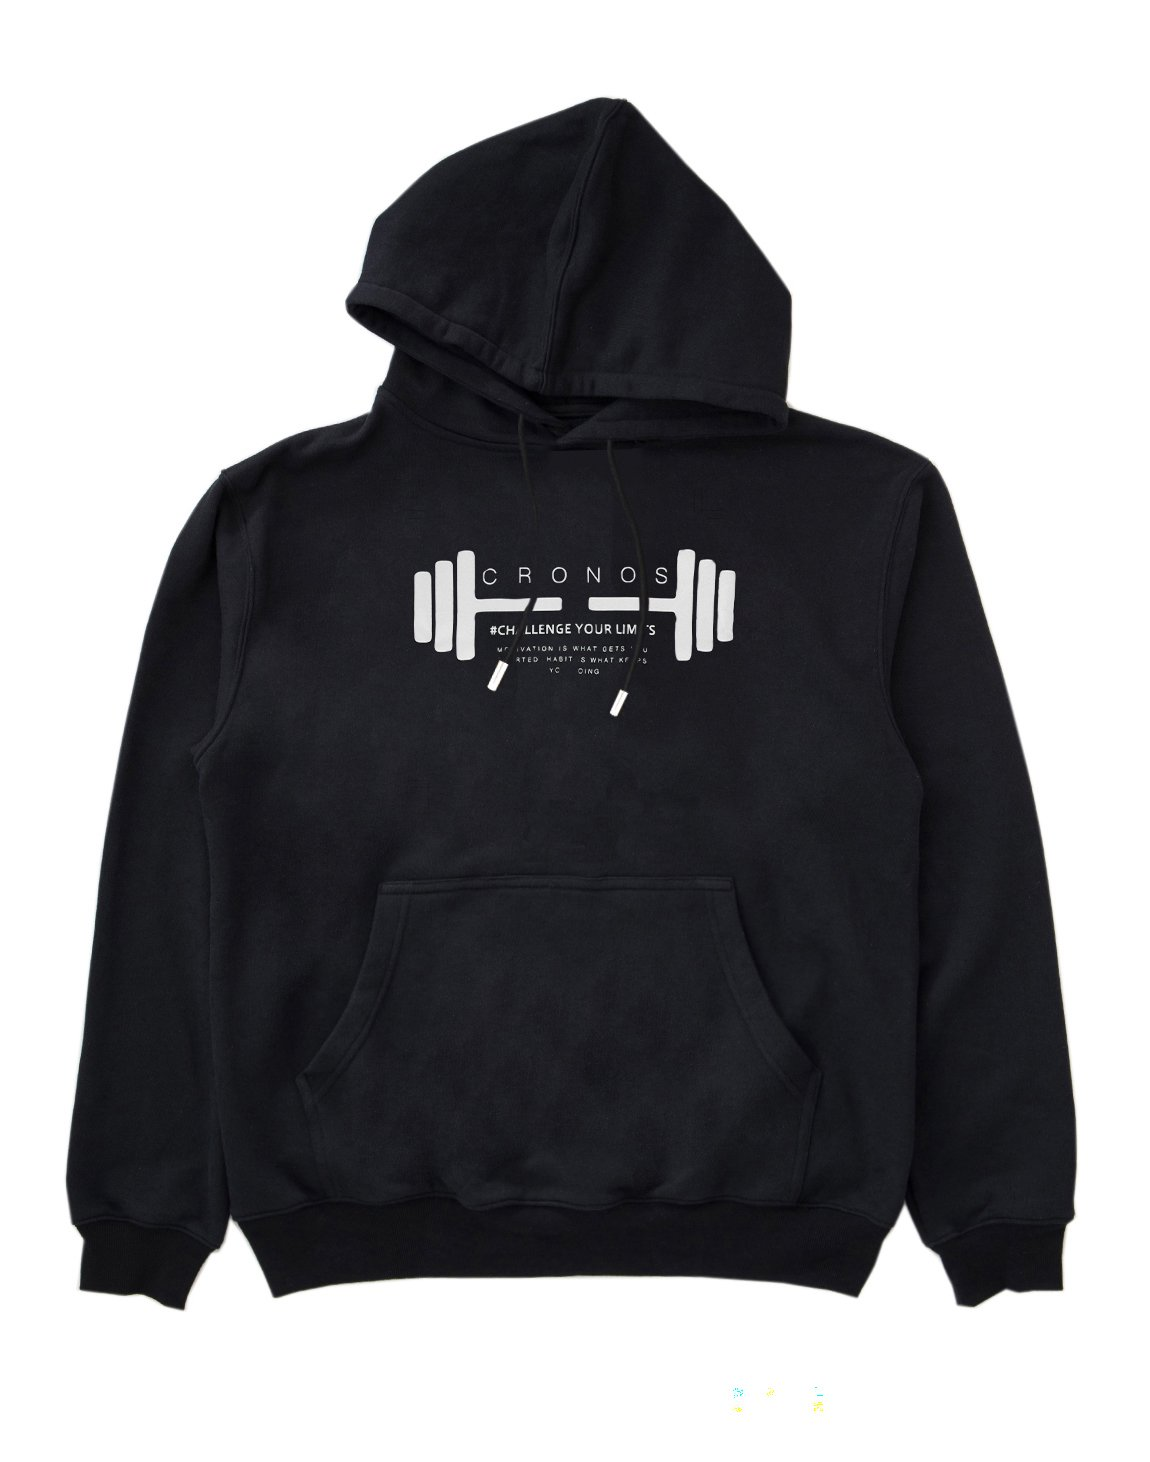 <img class='new_mark_img1' src='https://img.shop-pro.jp/img/new/icons1.gif' style='border:none;display:inline;margin:0px;padding:0px;width:auto;' />CRONOS DUMBBELL LOGO HOODY【BLACK】